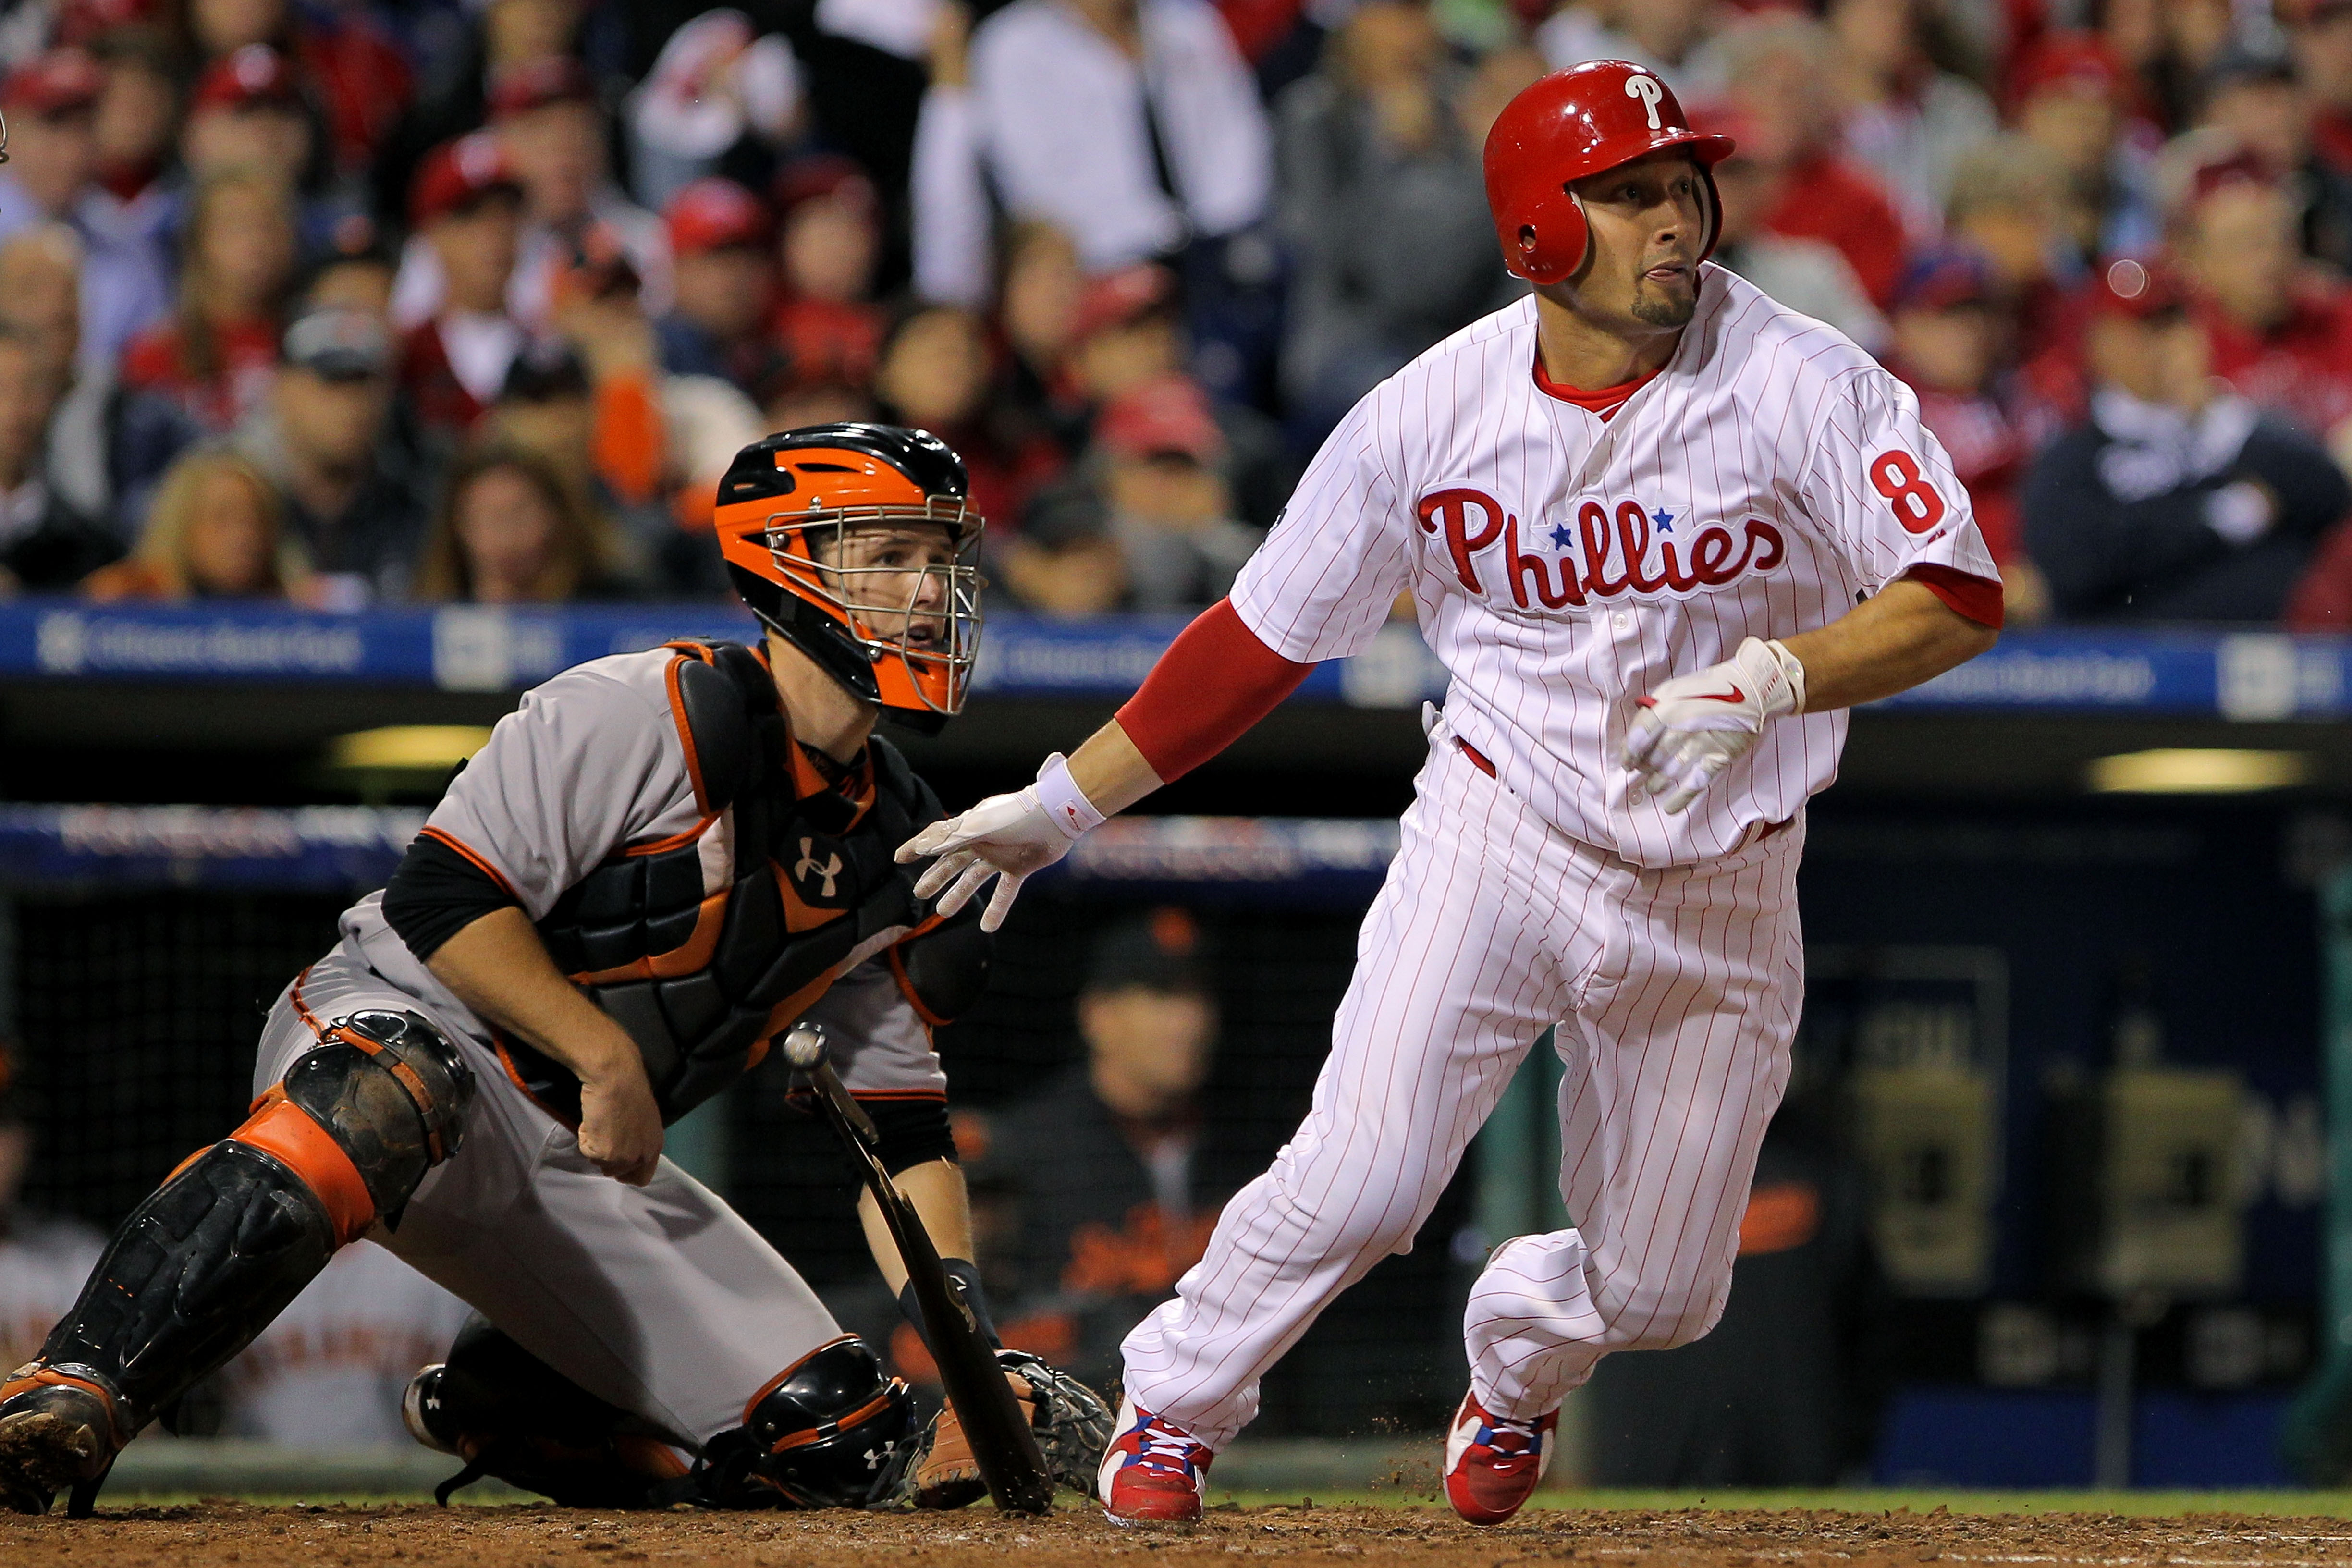 PHILADELPHIA - OCTOBER 23:  Shane Victorino #8 of the Philadelphia Phillies hits a single in the eighth against the San Francisco Giants in Game Six of the NLCS during the 2010 MLB Playoffs at Citizens Bank Park on October 23, 2010 in Philadelphia, Pennsy